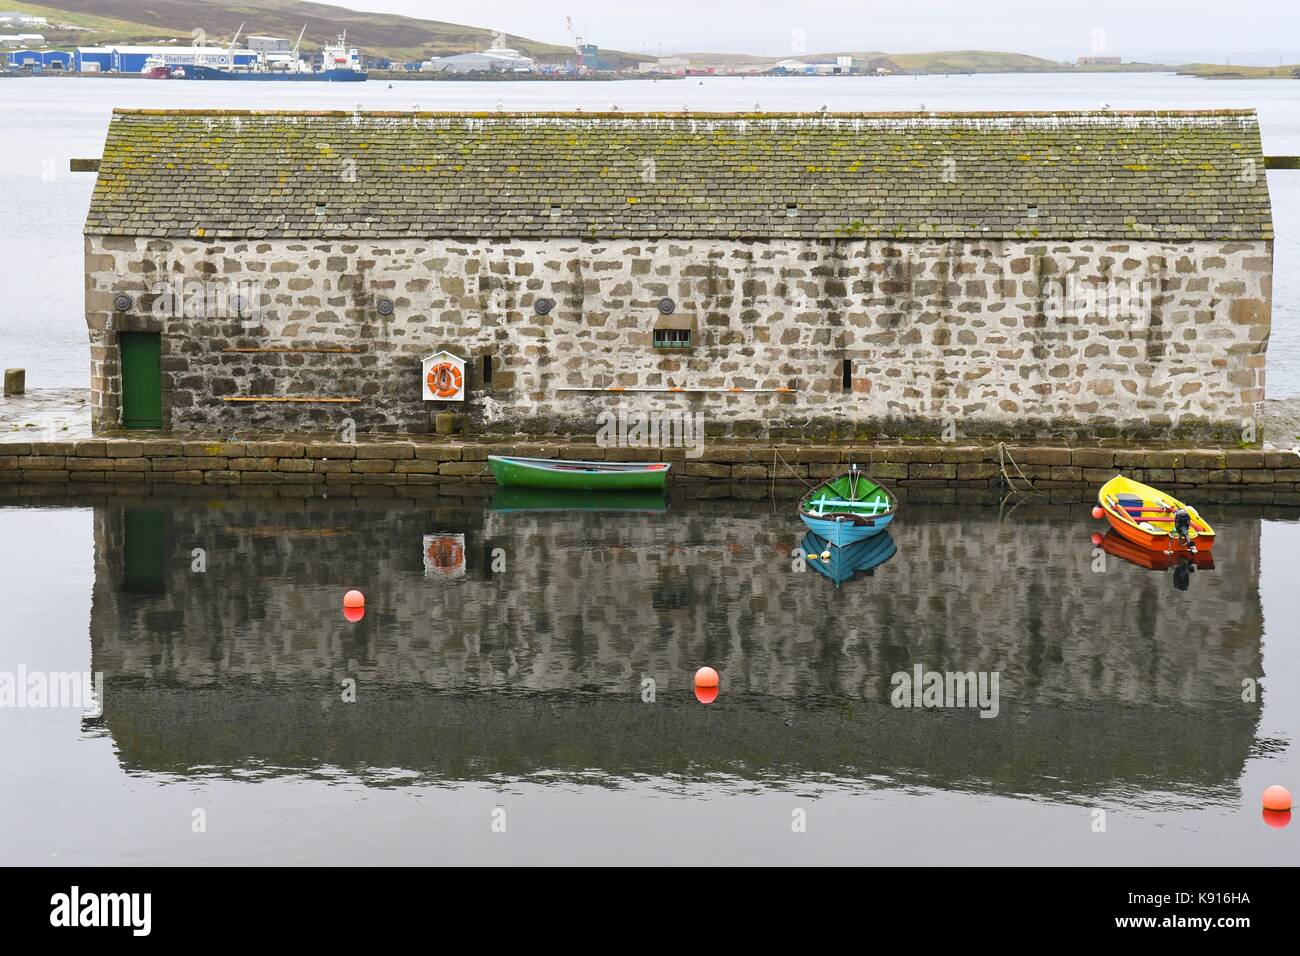 Hays Dock, Shetland Museum and Archives, Lerwick, Shetland Islands, Scotland, UK - Stock Image